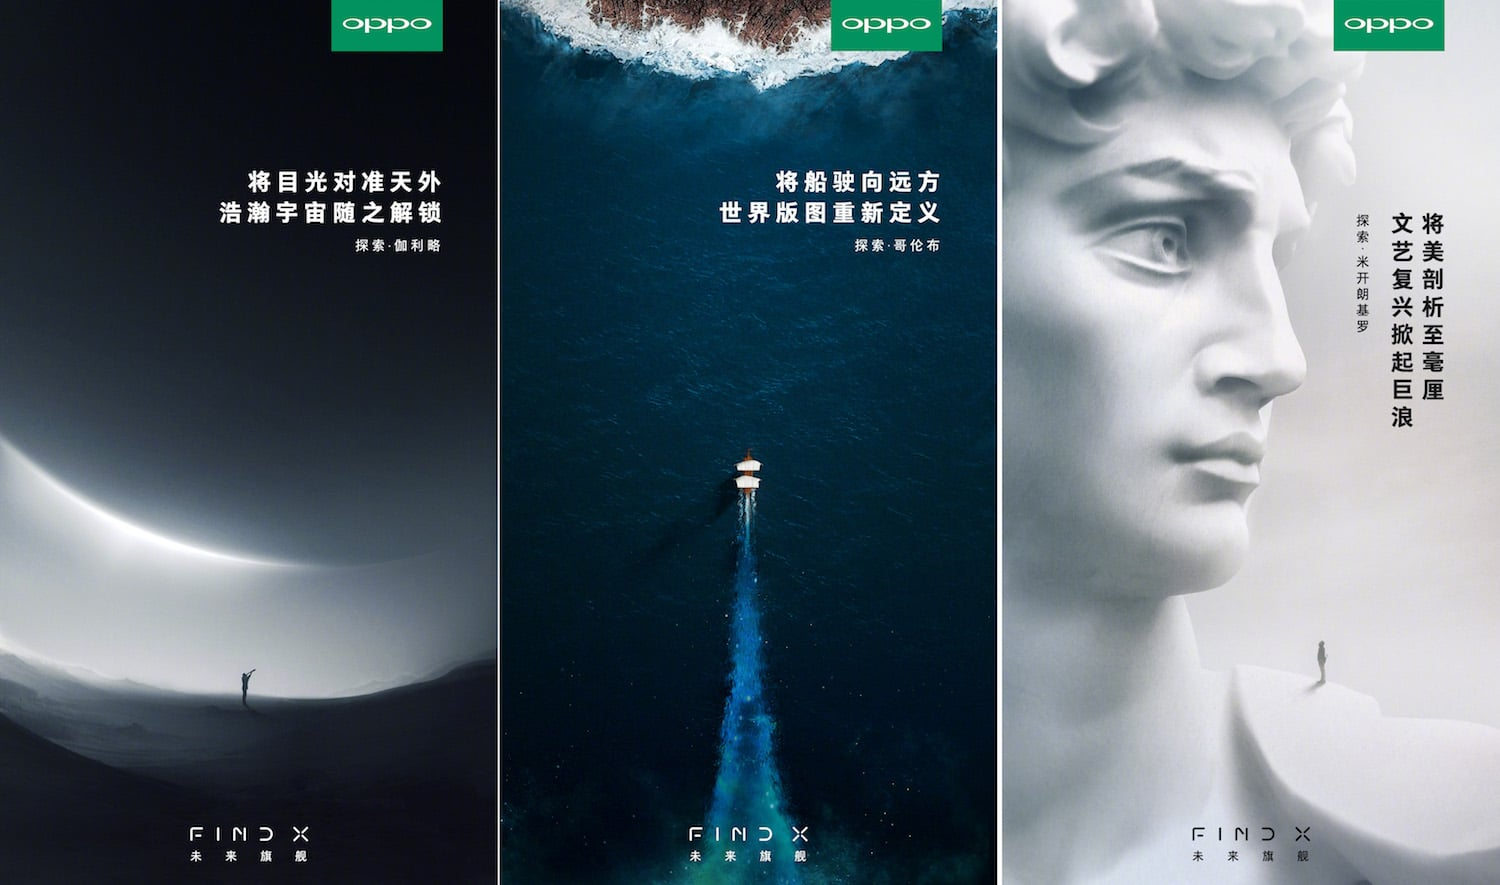 OPPO Poster Leaks Showing Tribute To Galileo, Columbus & Michelangelo